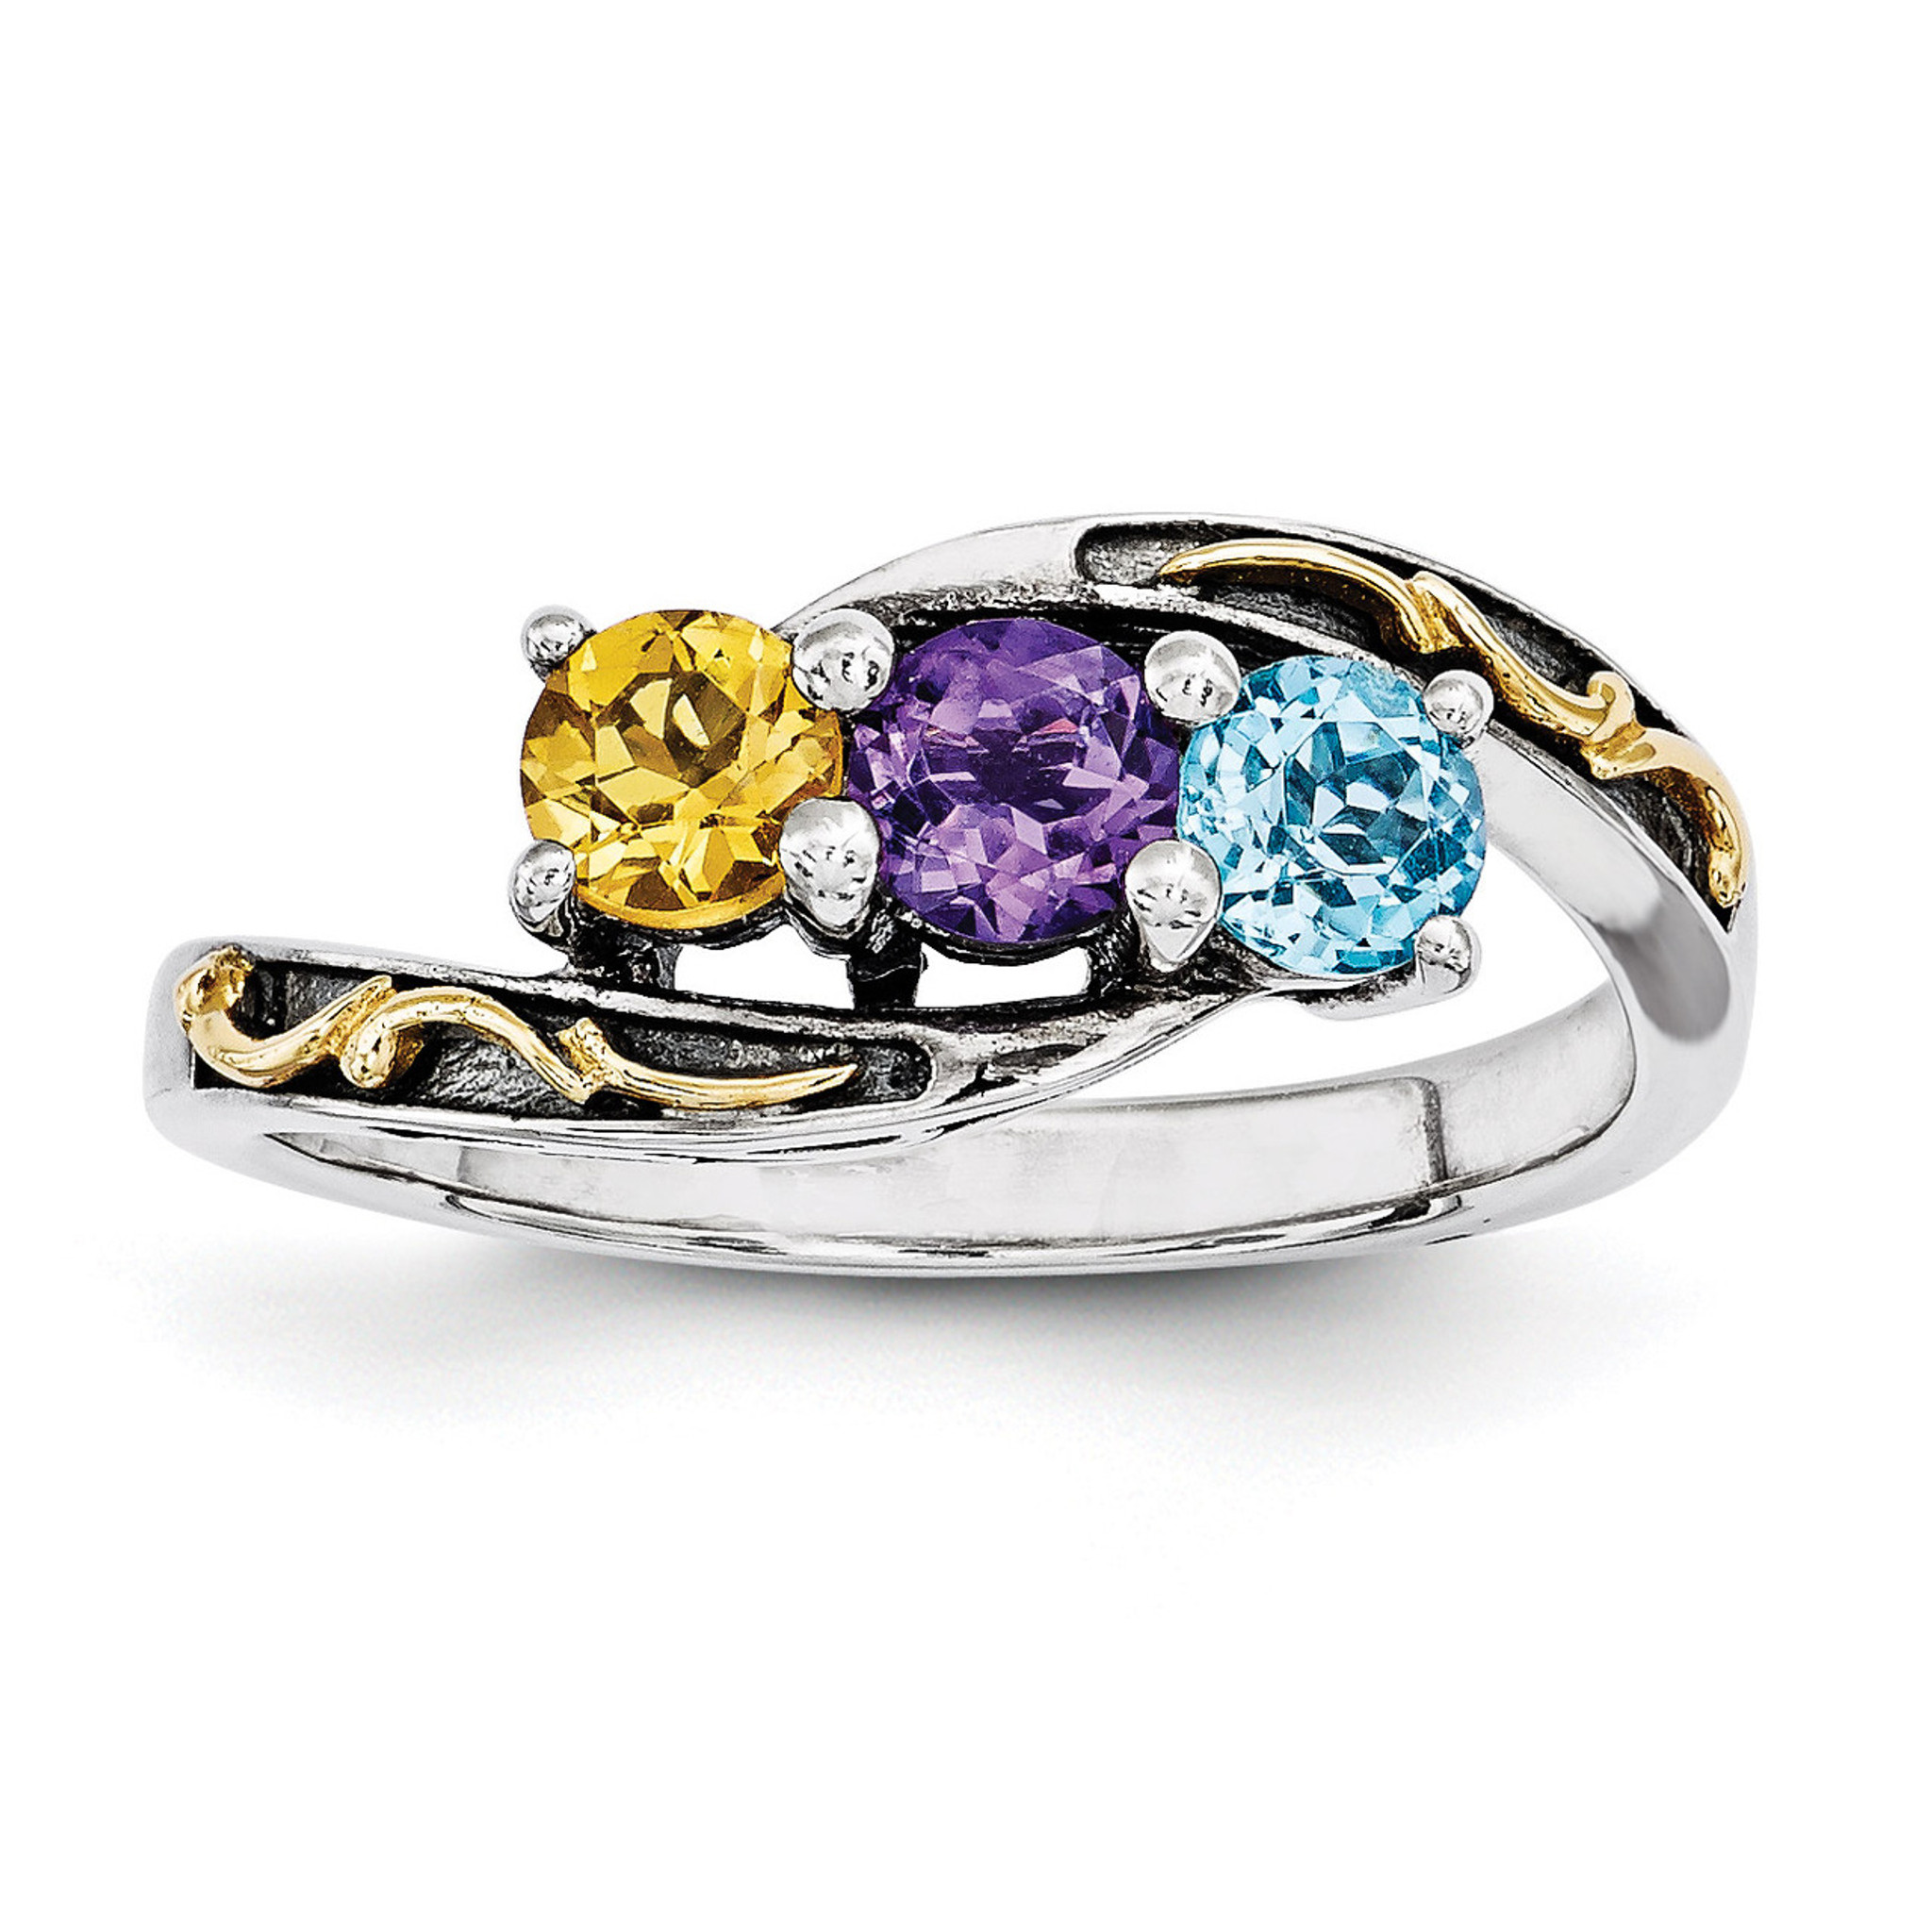 3 birthstones 14k three stone mother 39 s ring sterling. Black Bedroom Furniture Sets. Home Design Ideas